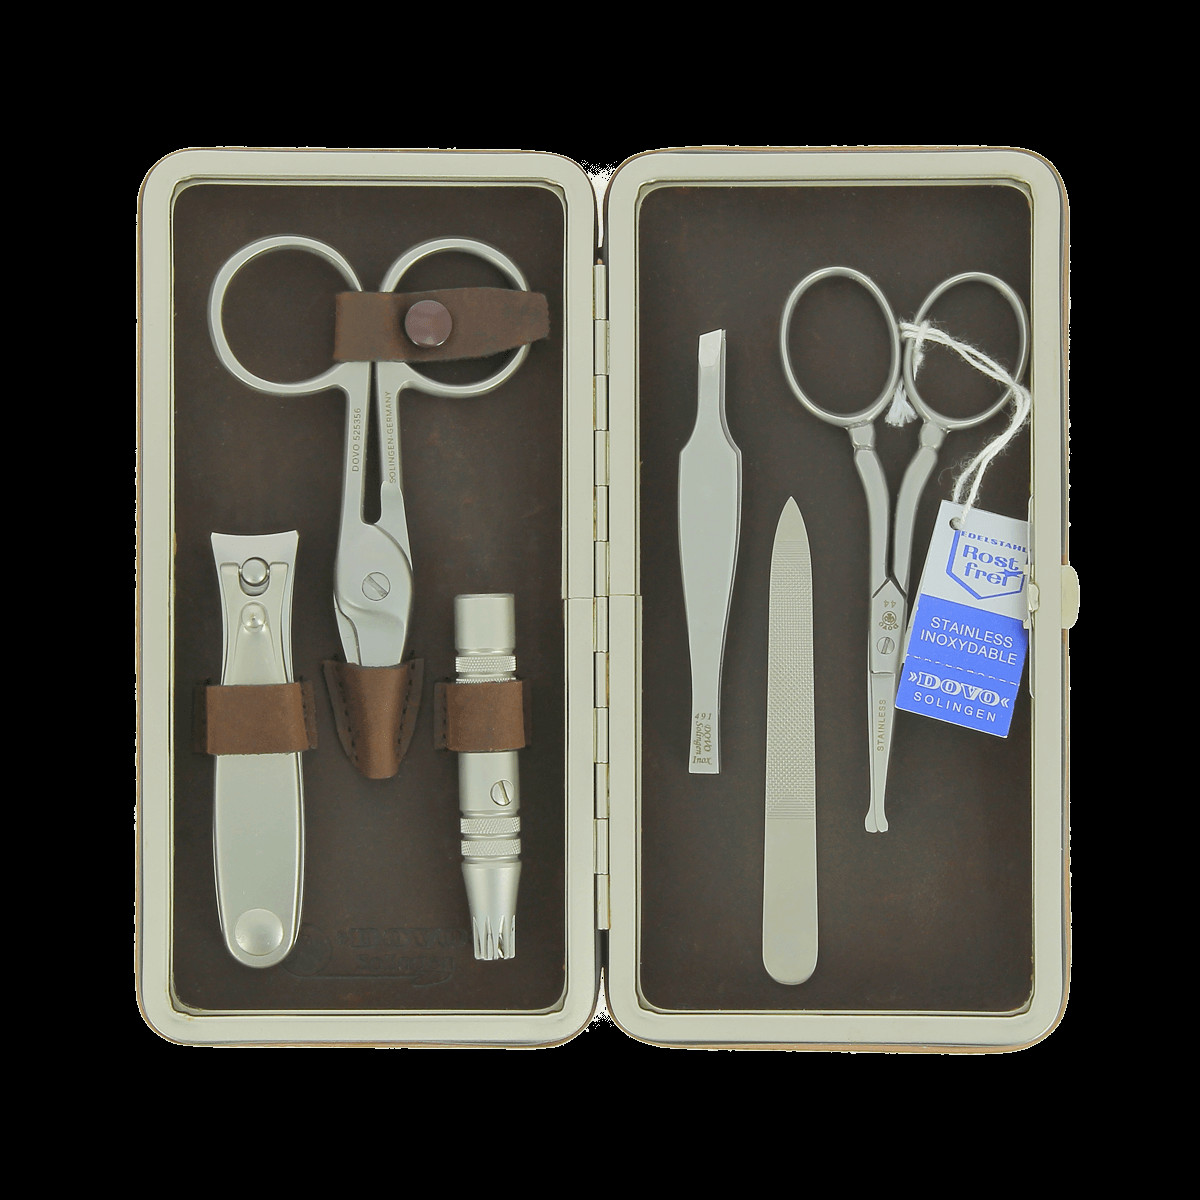 Dovo Maniküre Set  Dovo 6 Piece Manicure Set in Brown Leather Magnetic Case